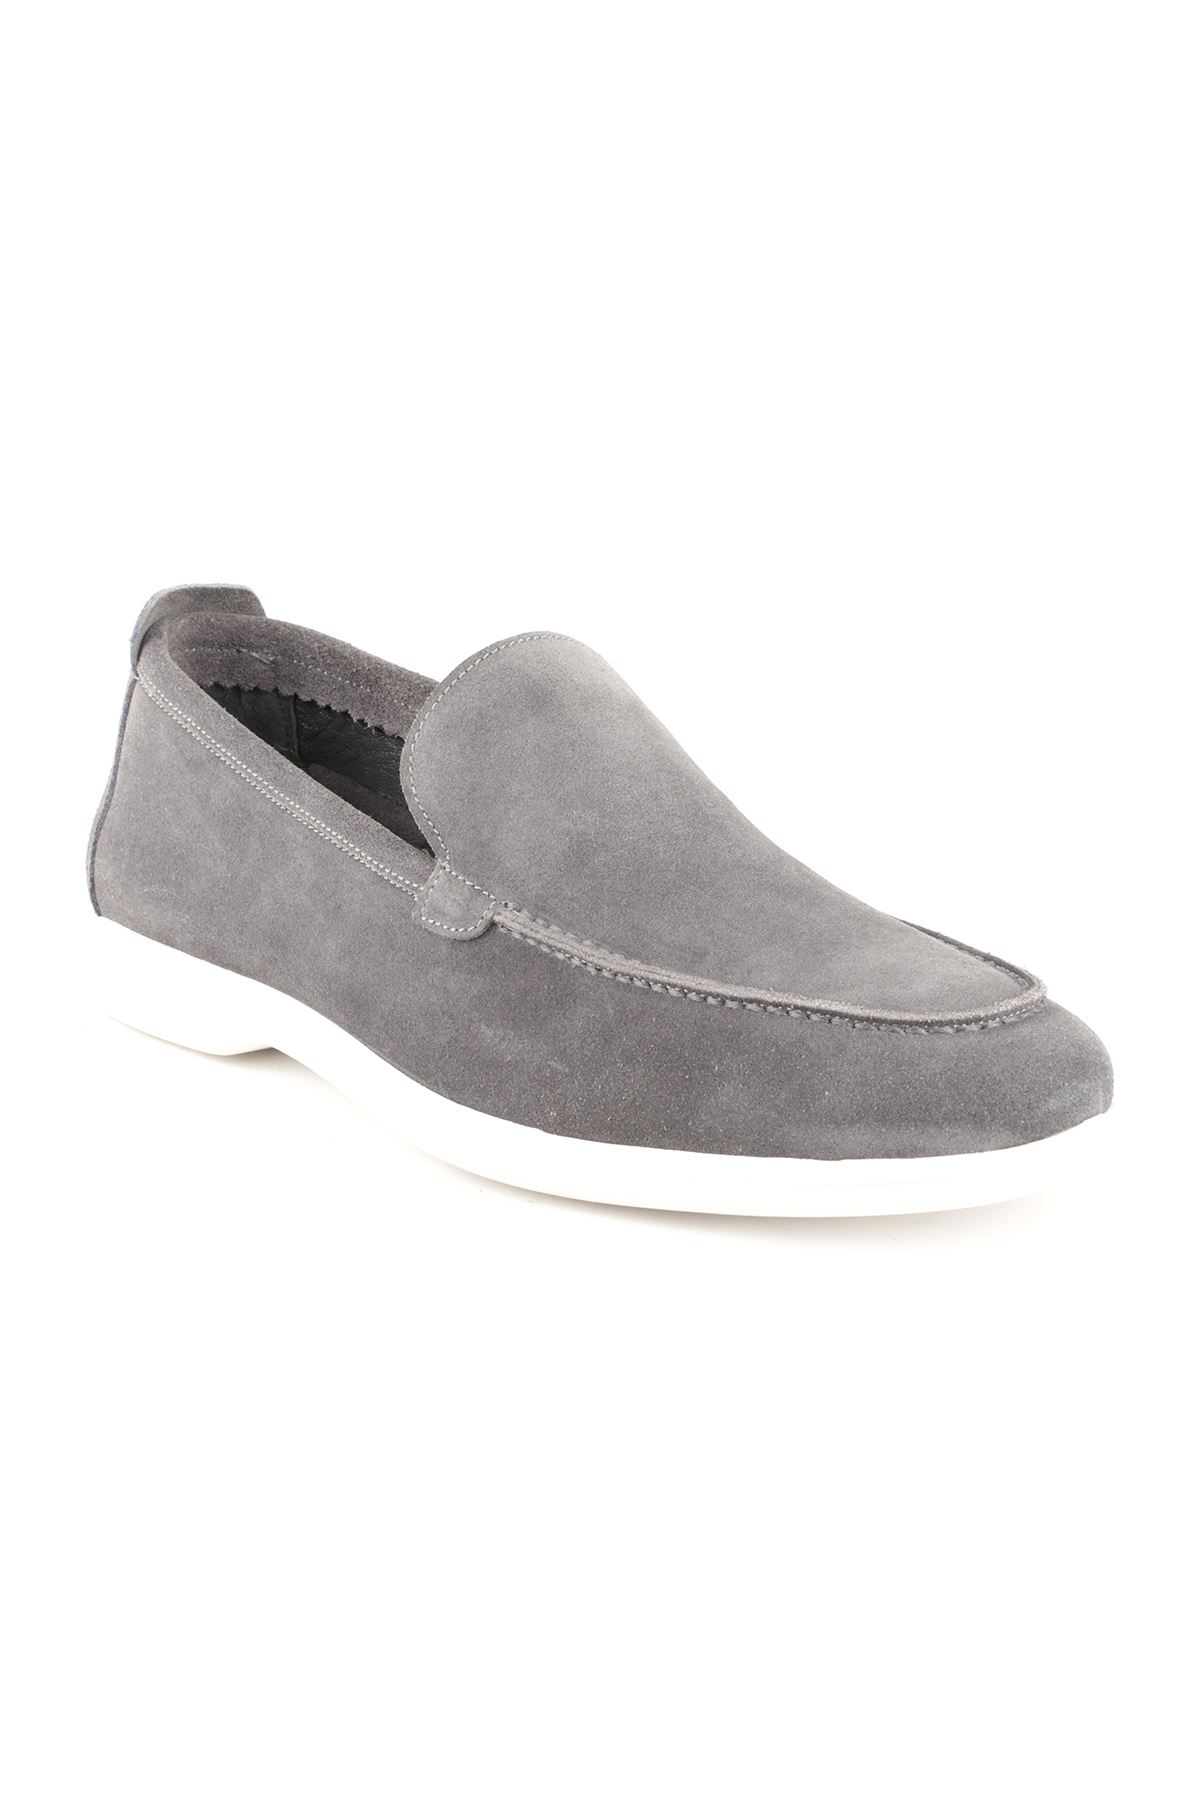 Libero T1421 Gray Loafer Shoes